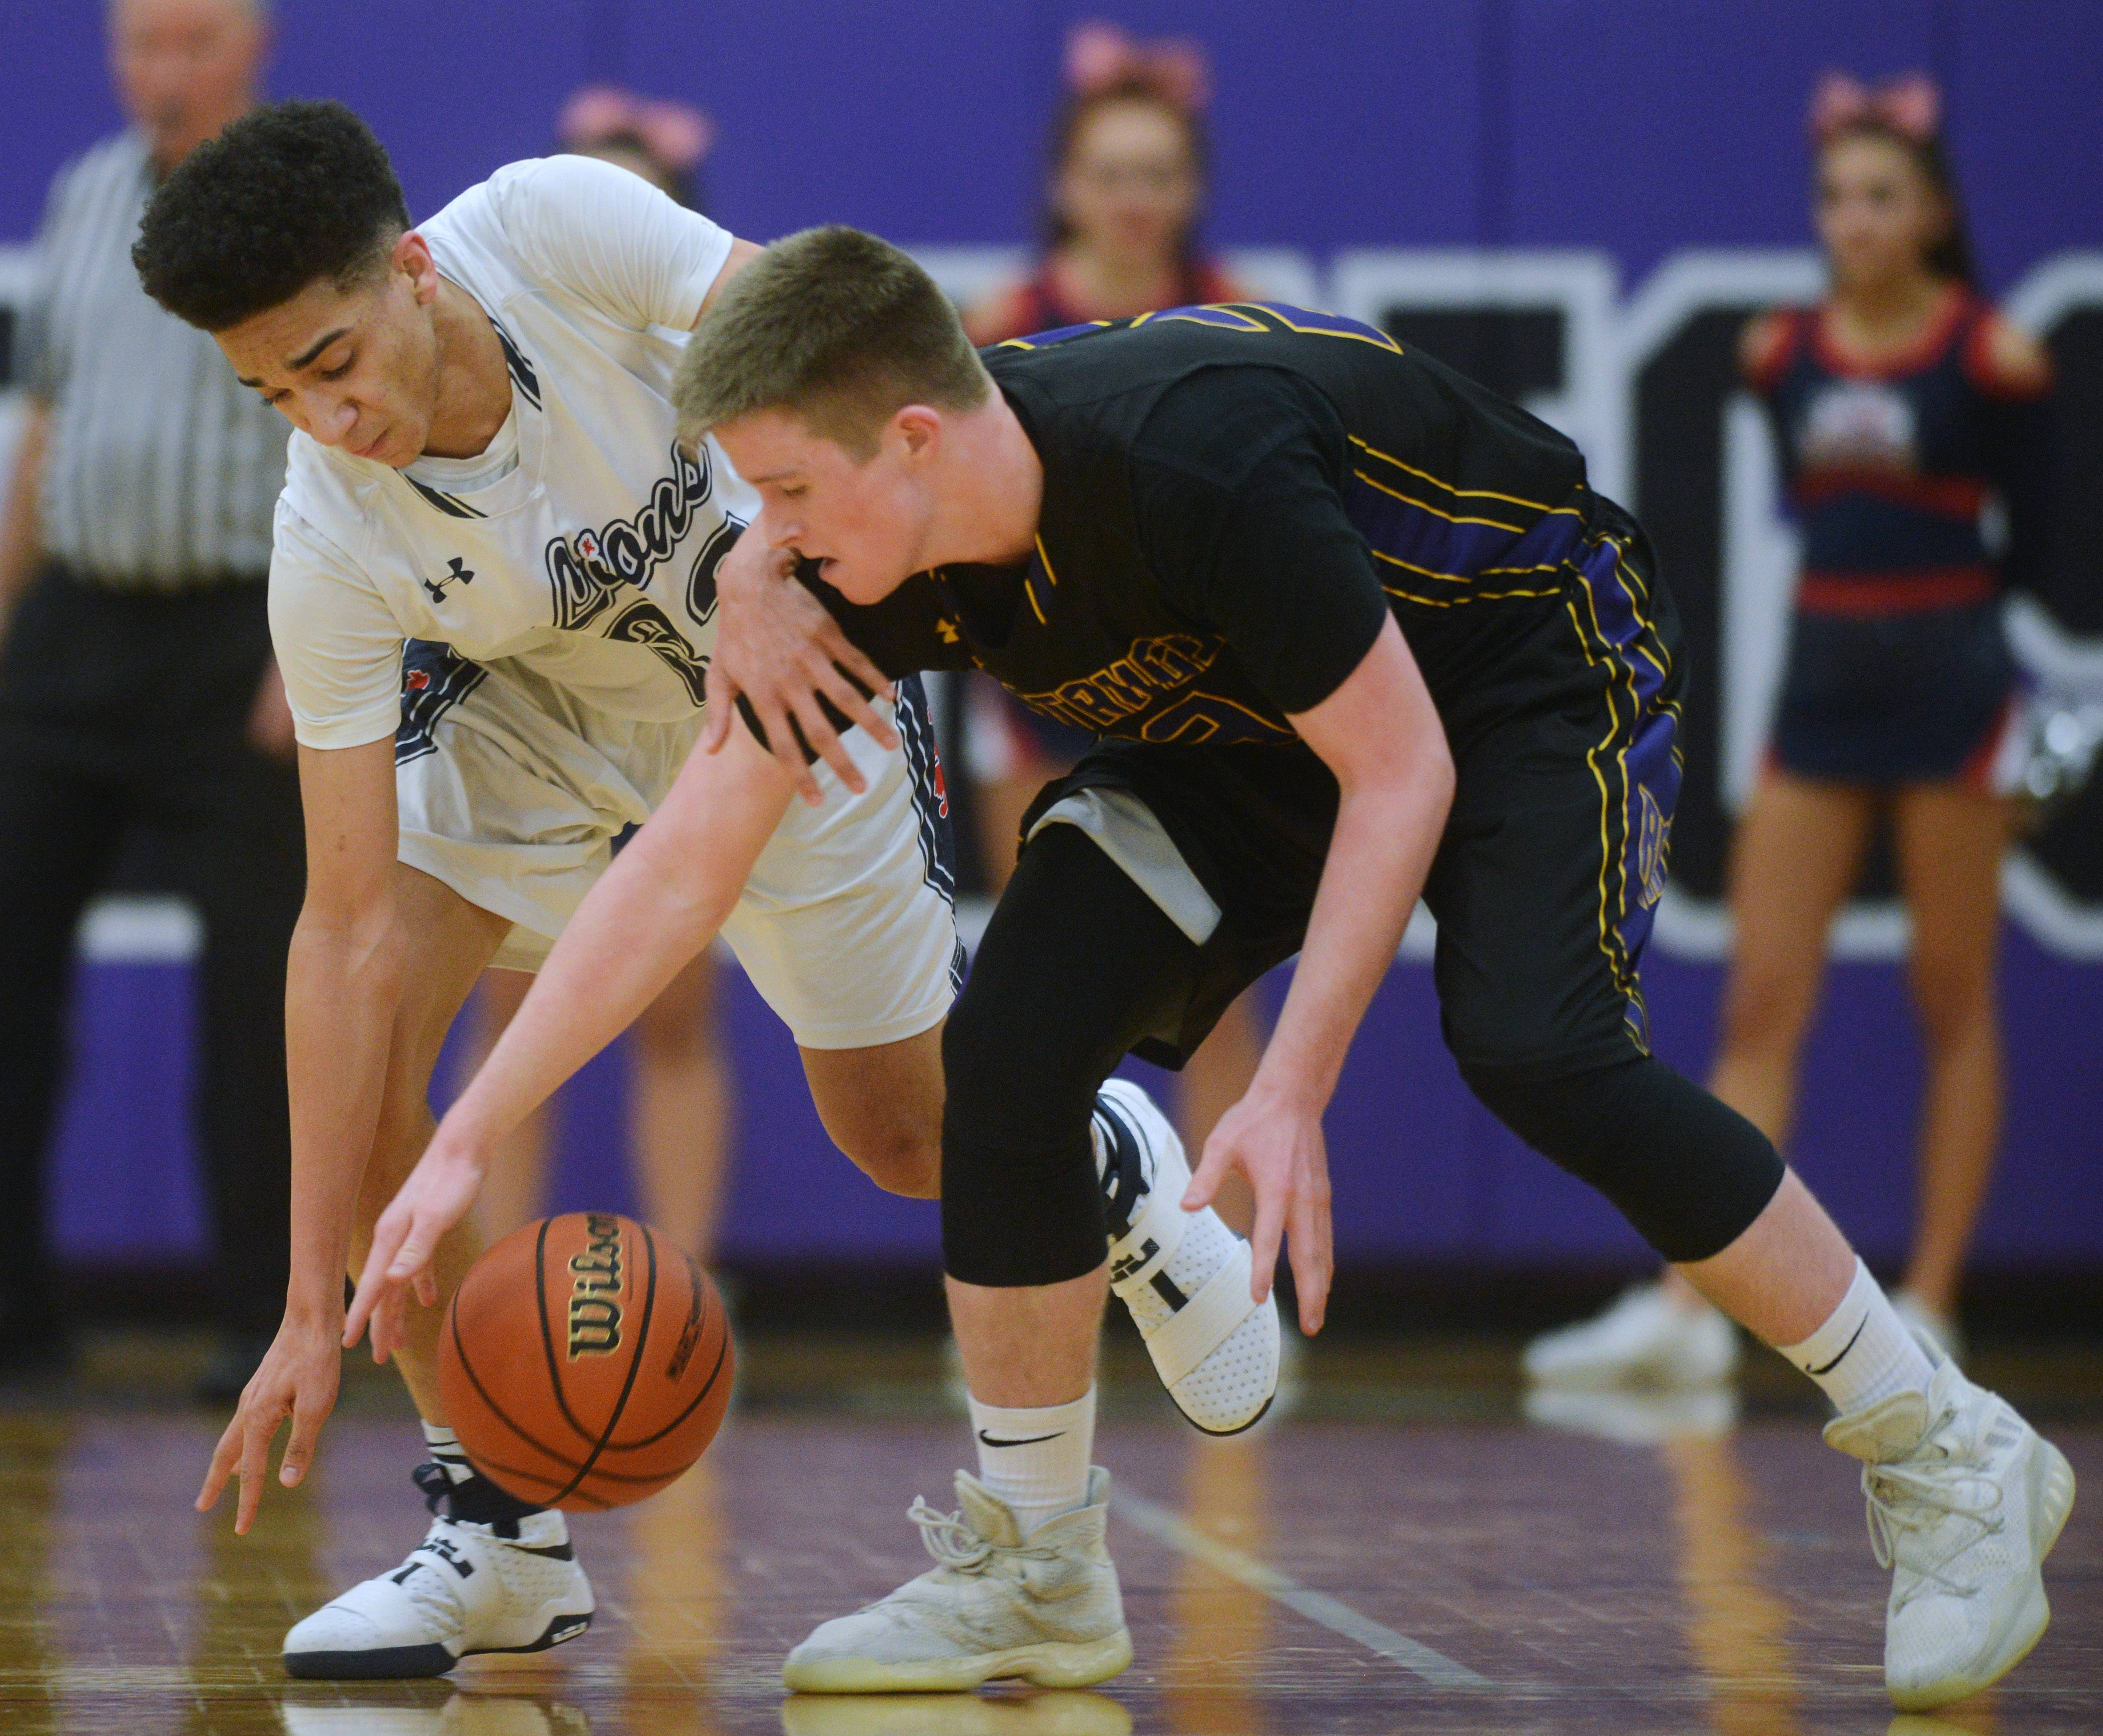 St. Viator's Jeremiah Hernandez, left, steals the ball from Rolling Meadows' Joe Coen during regional semifinal play at Niles North in Skokie on Wednesday.